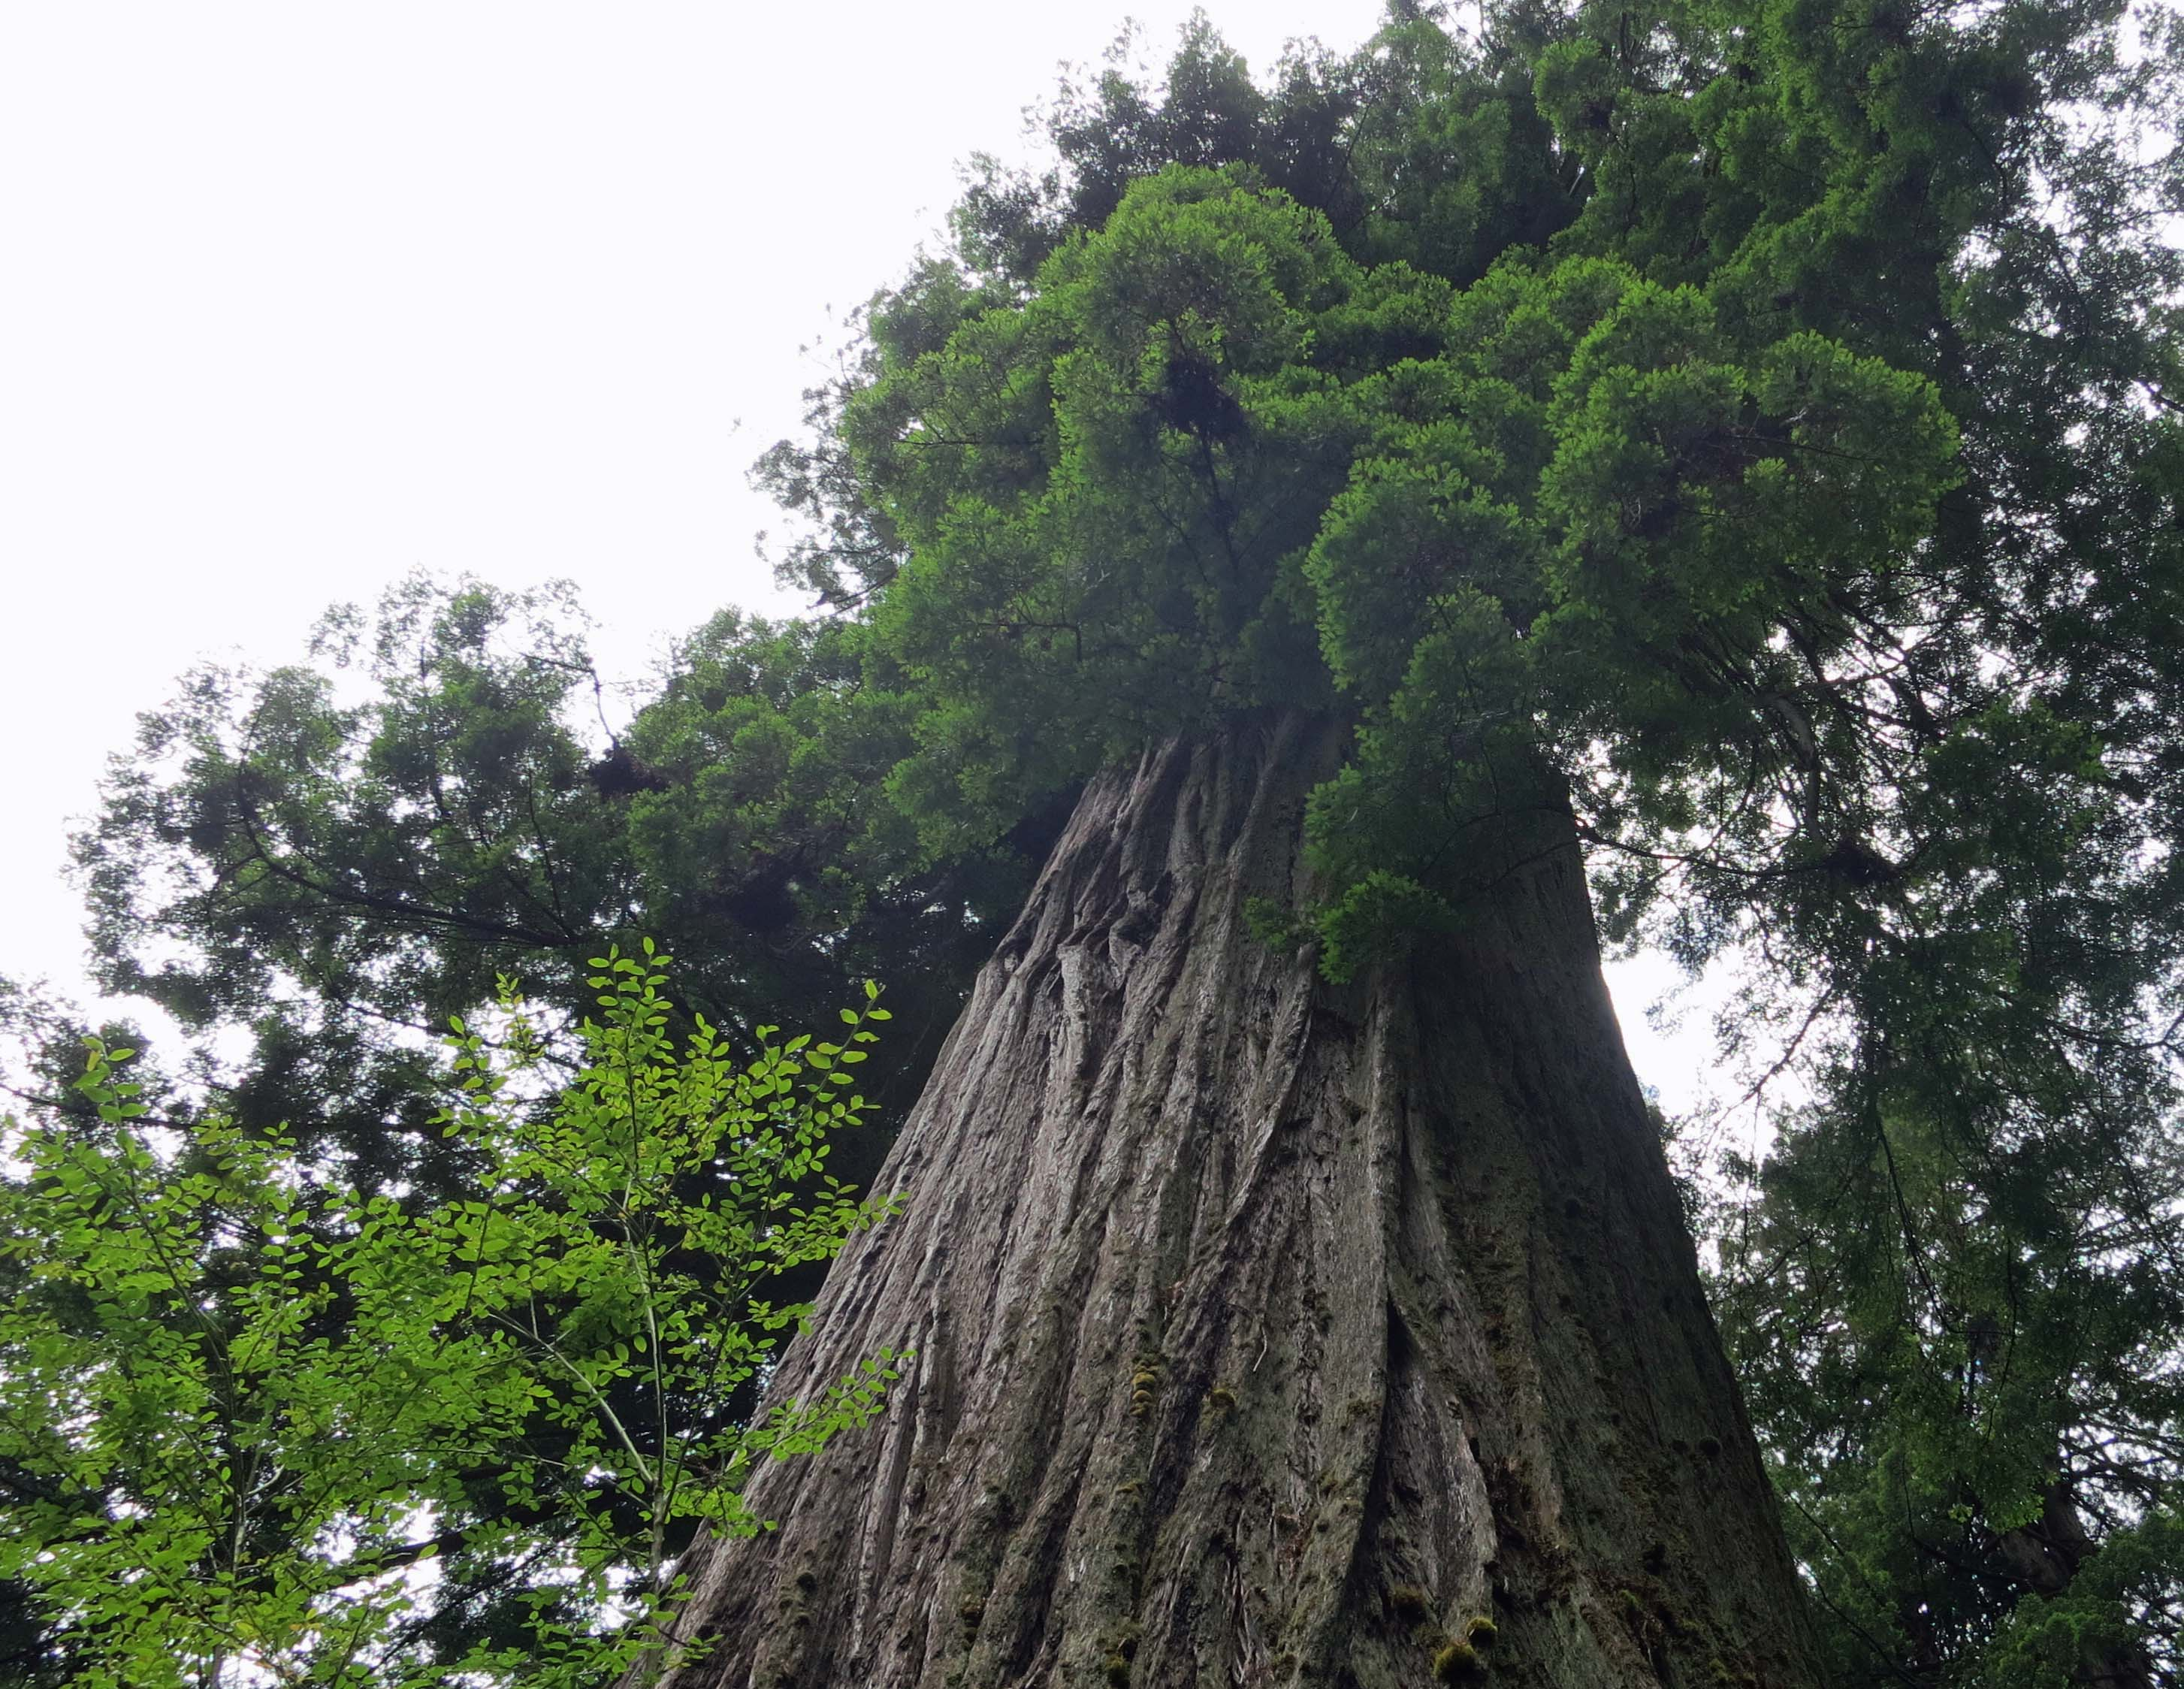 Big Tree | Wandering through Time and Place